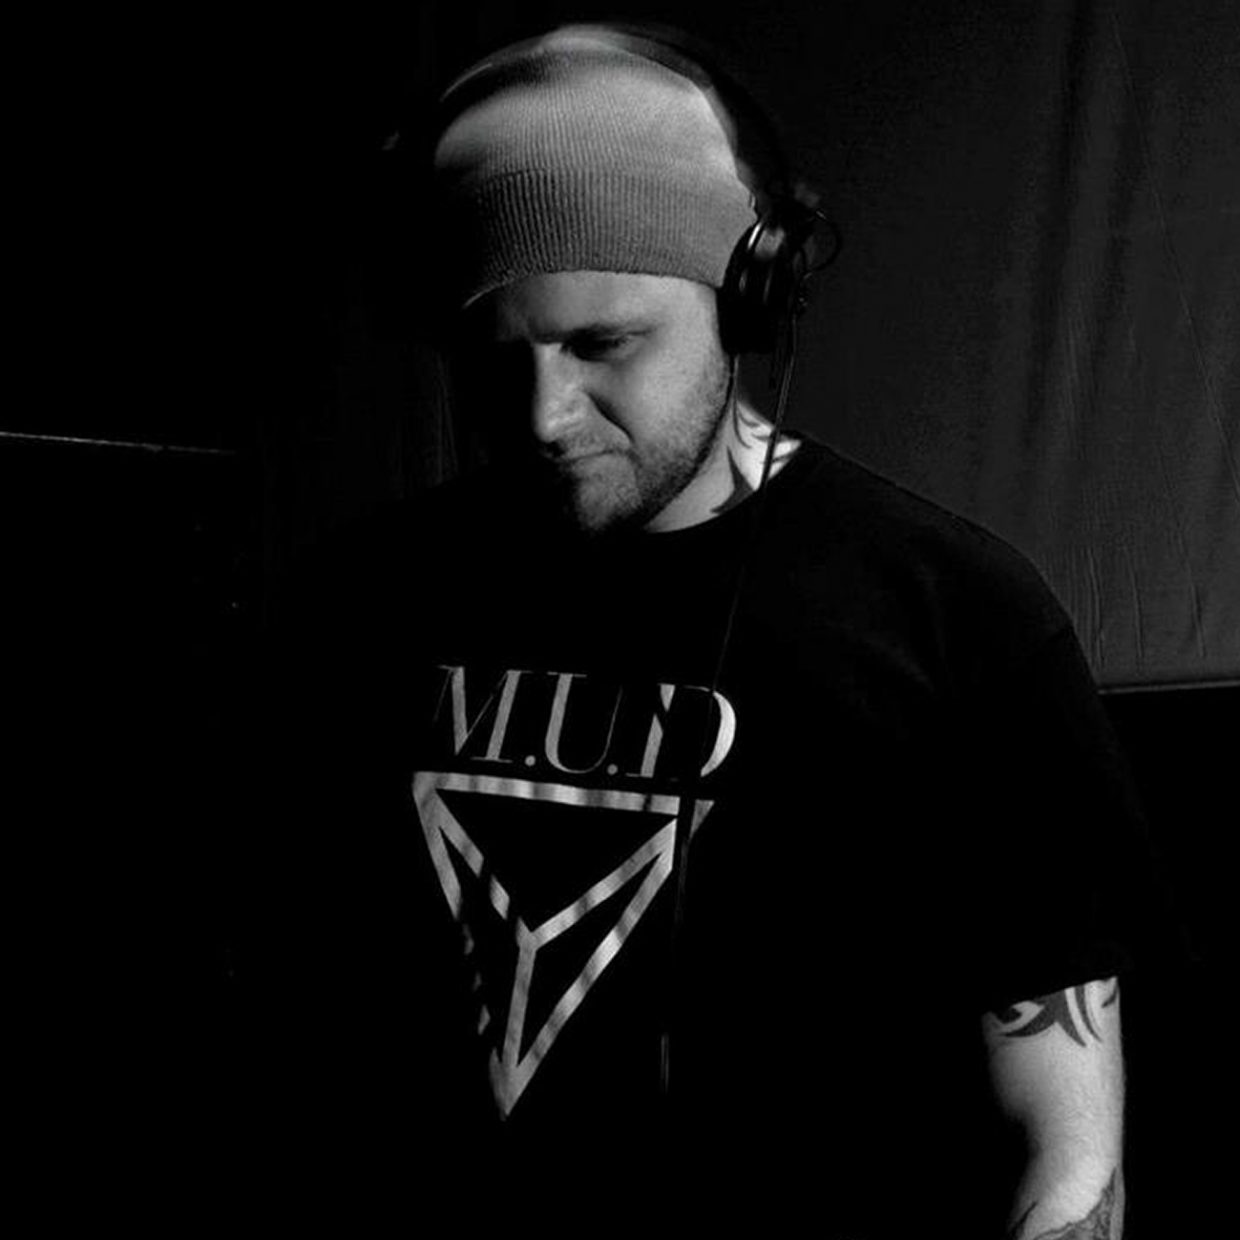 English DJ Demon highlights a packed Friday at The Tap House Sports Grill. Demon, who came up in the English grime scene, has been at the forefront of the dubstep movement. In addition, Coult-45, Caustik and CurlyOnE will play. The show is free and starts at 10 p.m.